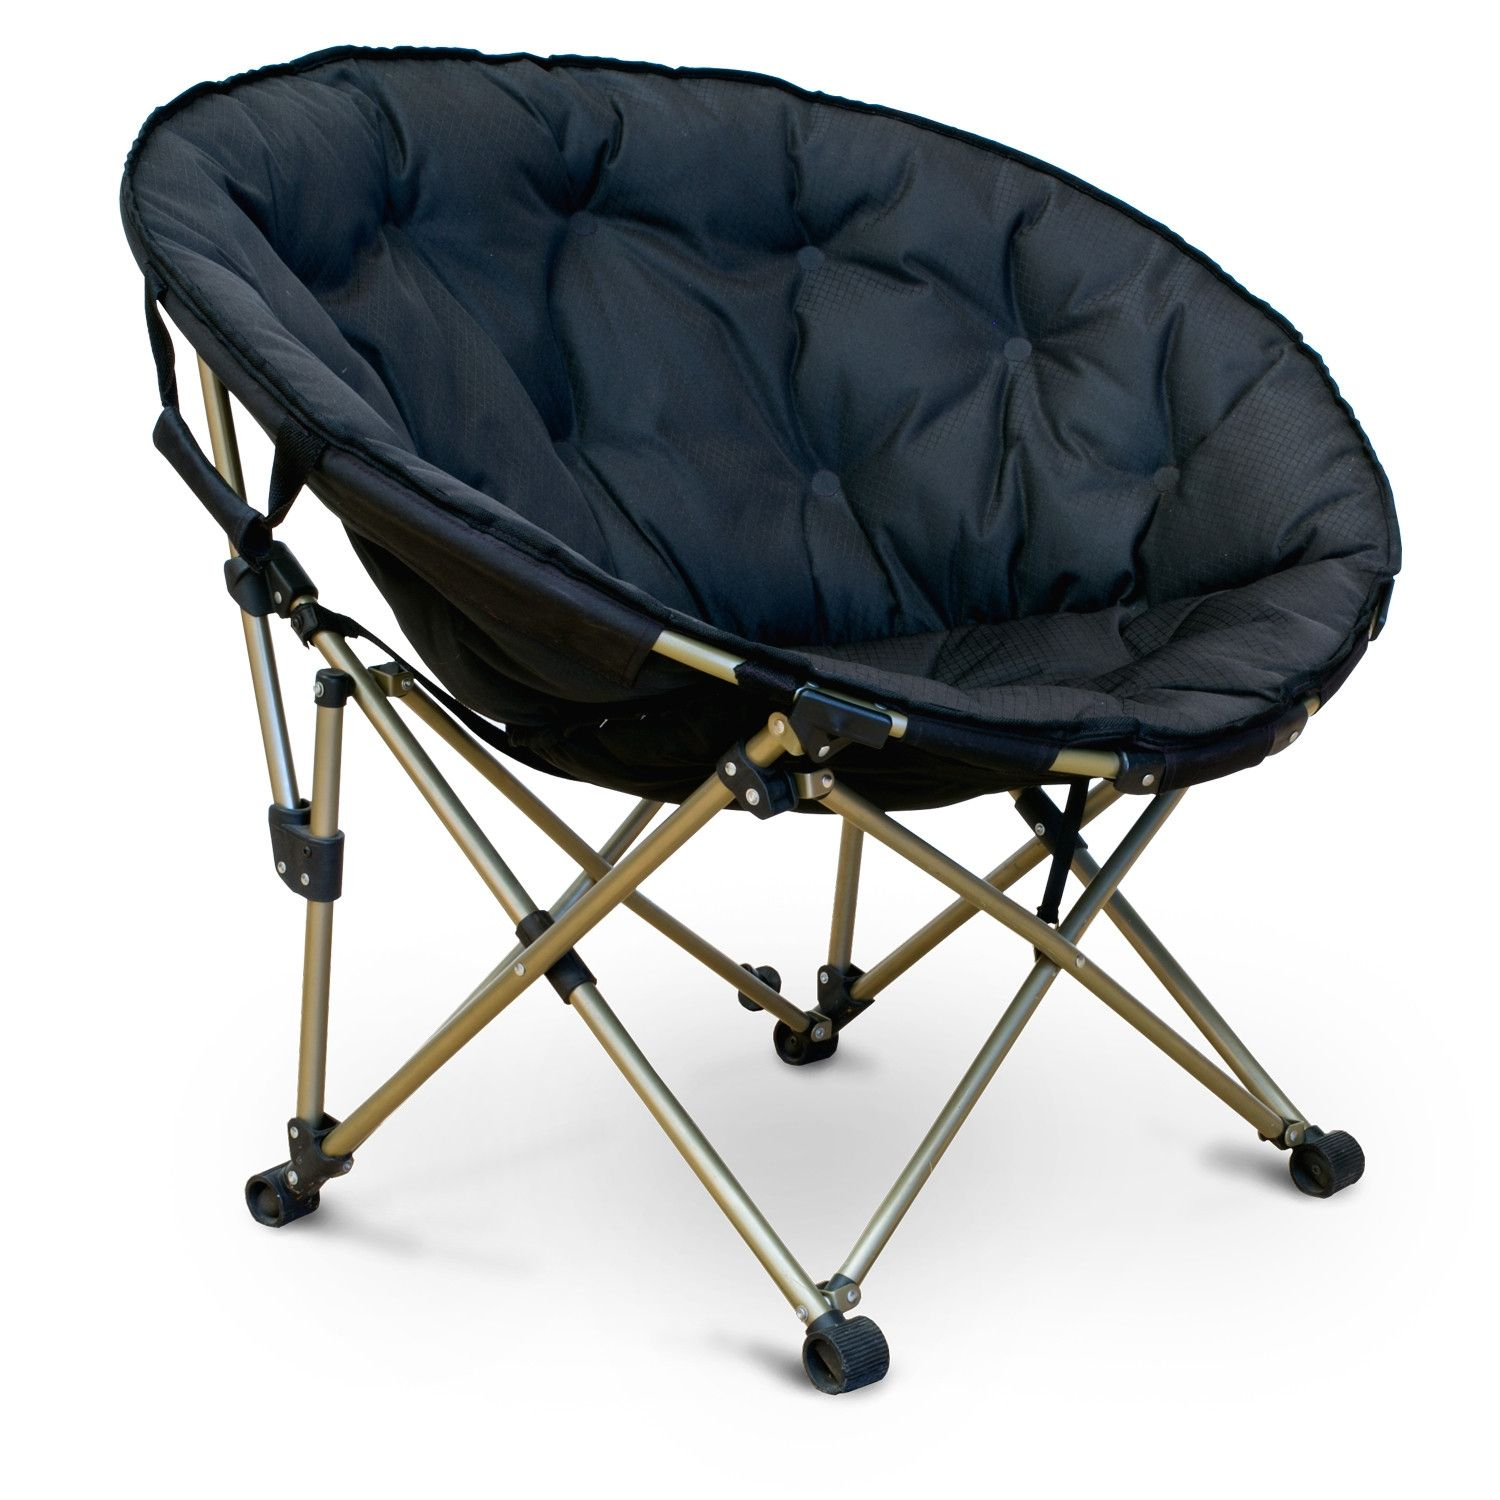 Comfy Folding Camping Chairs Camping Camping Chairs Folding